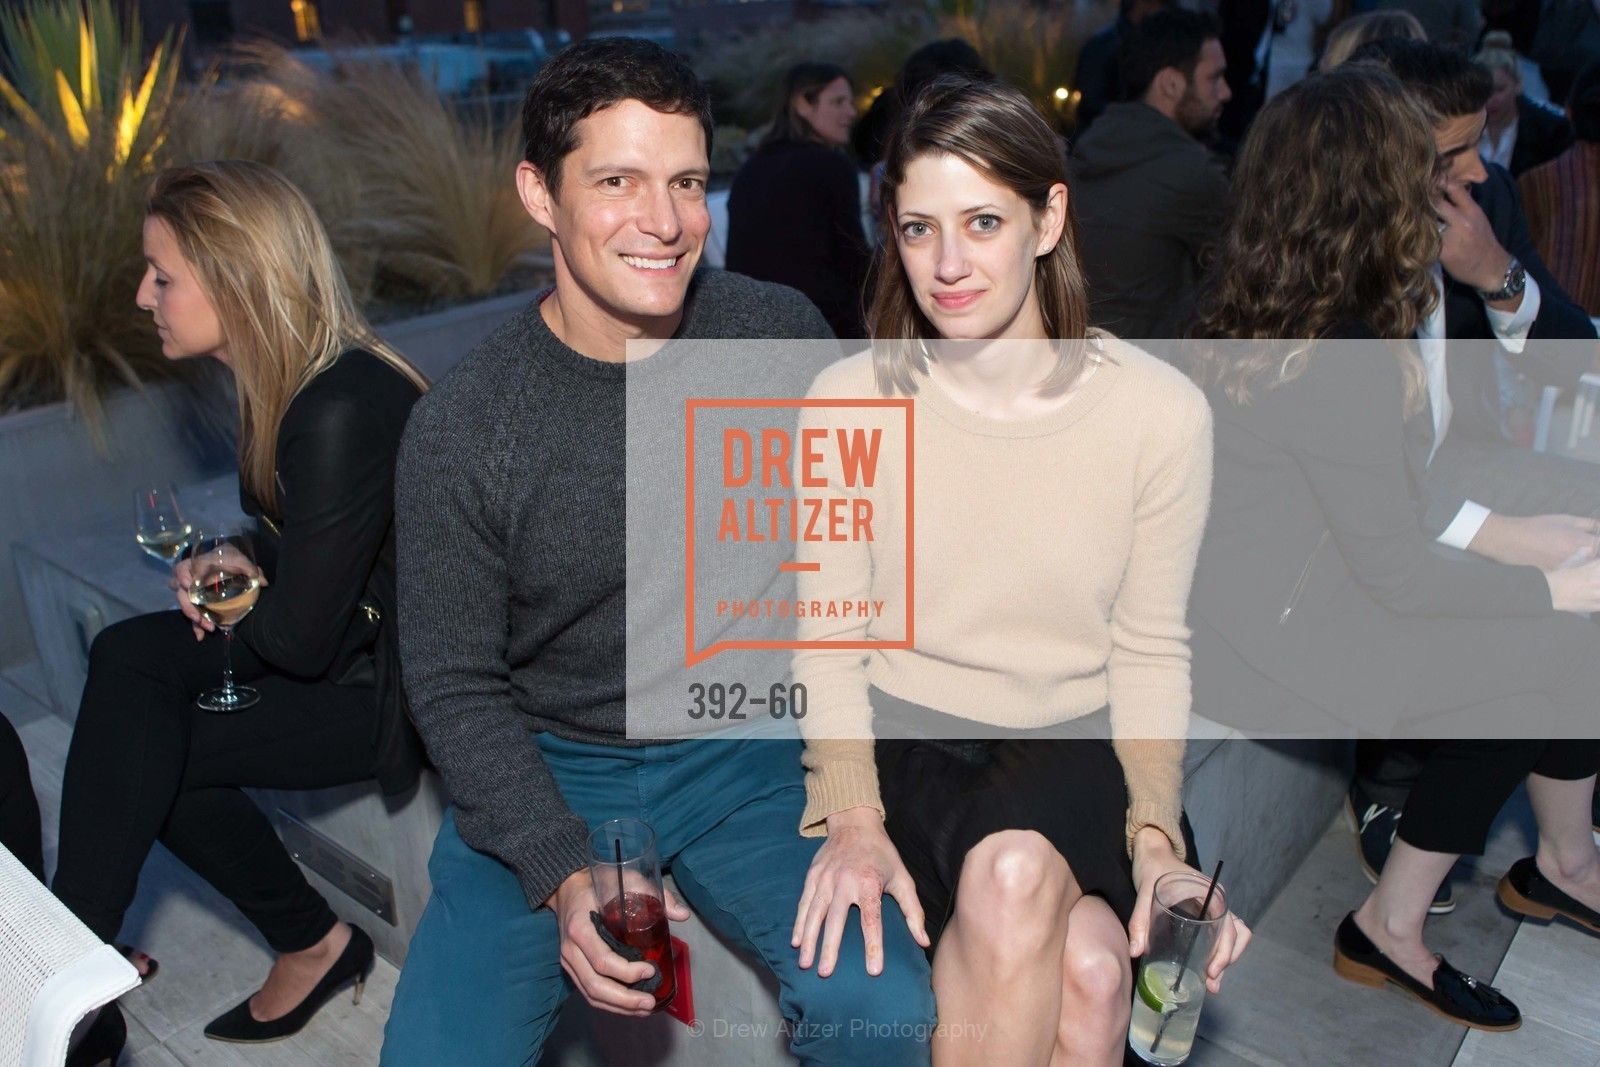 Noah Yago, Alyza Edelstein, MR PORTER Celebrate The San Francisco Issue of The Journal, The Battery Rooftop - The Battery SF, April 23rd, 2015,Drew Altizer, Drew Altizer Photography, full-service agency, private events, San Francisco photographer, photographer california